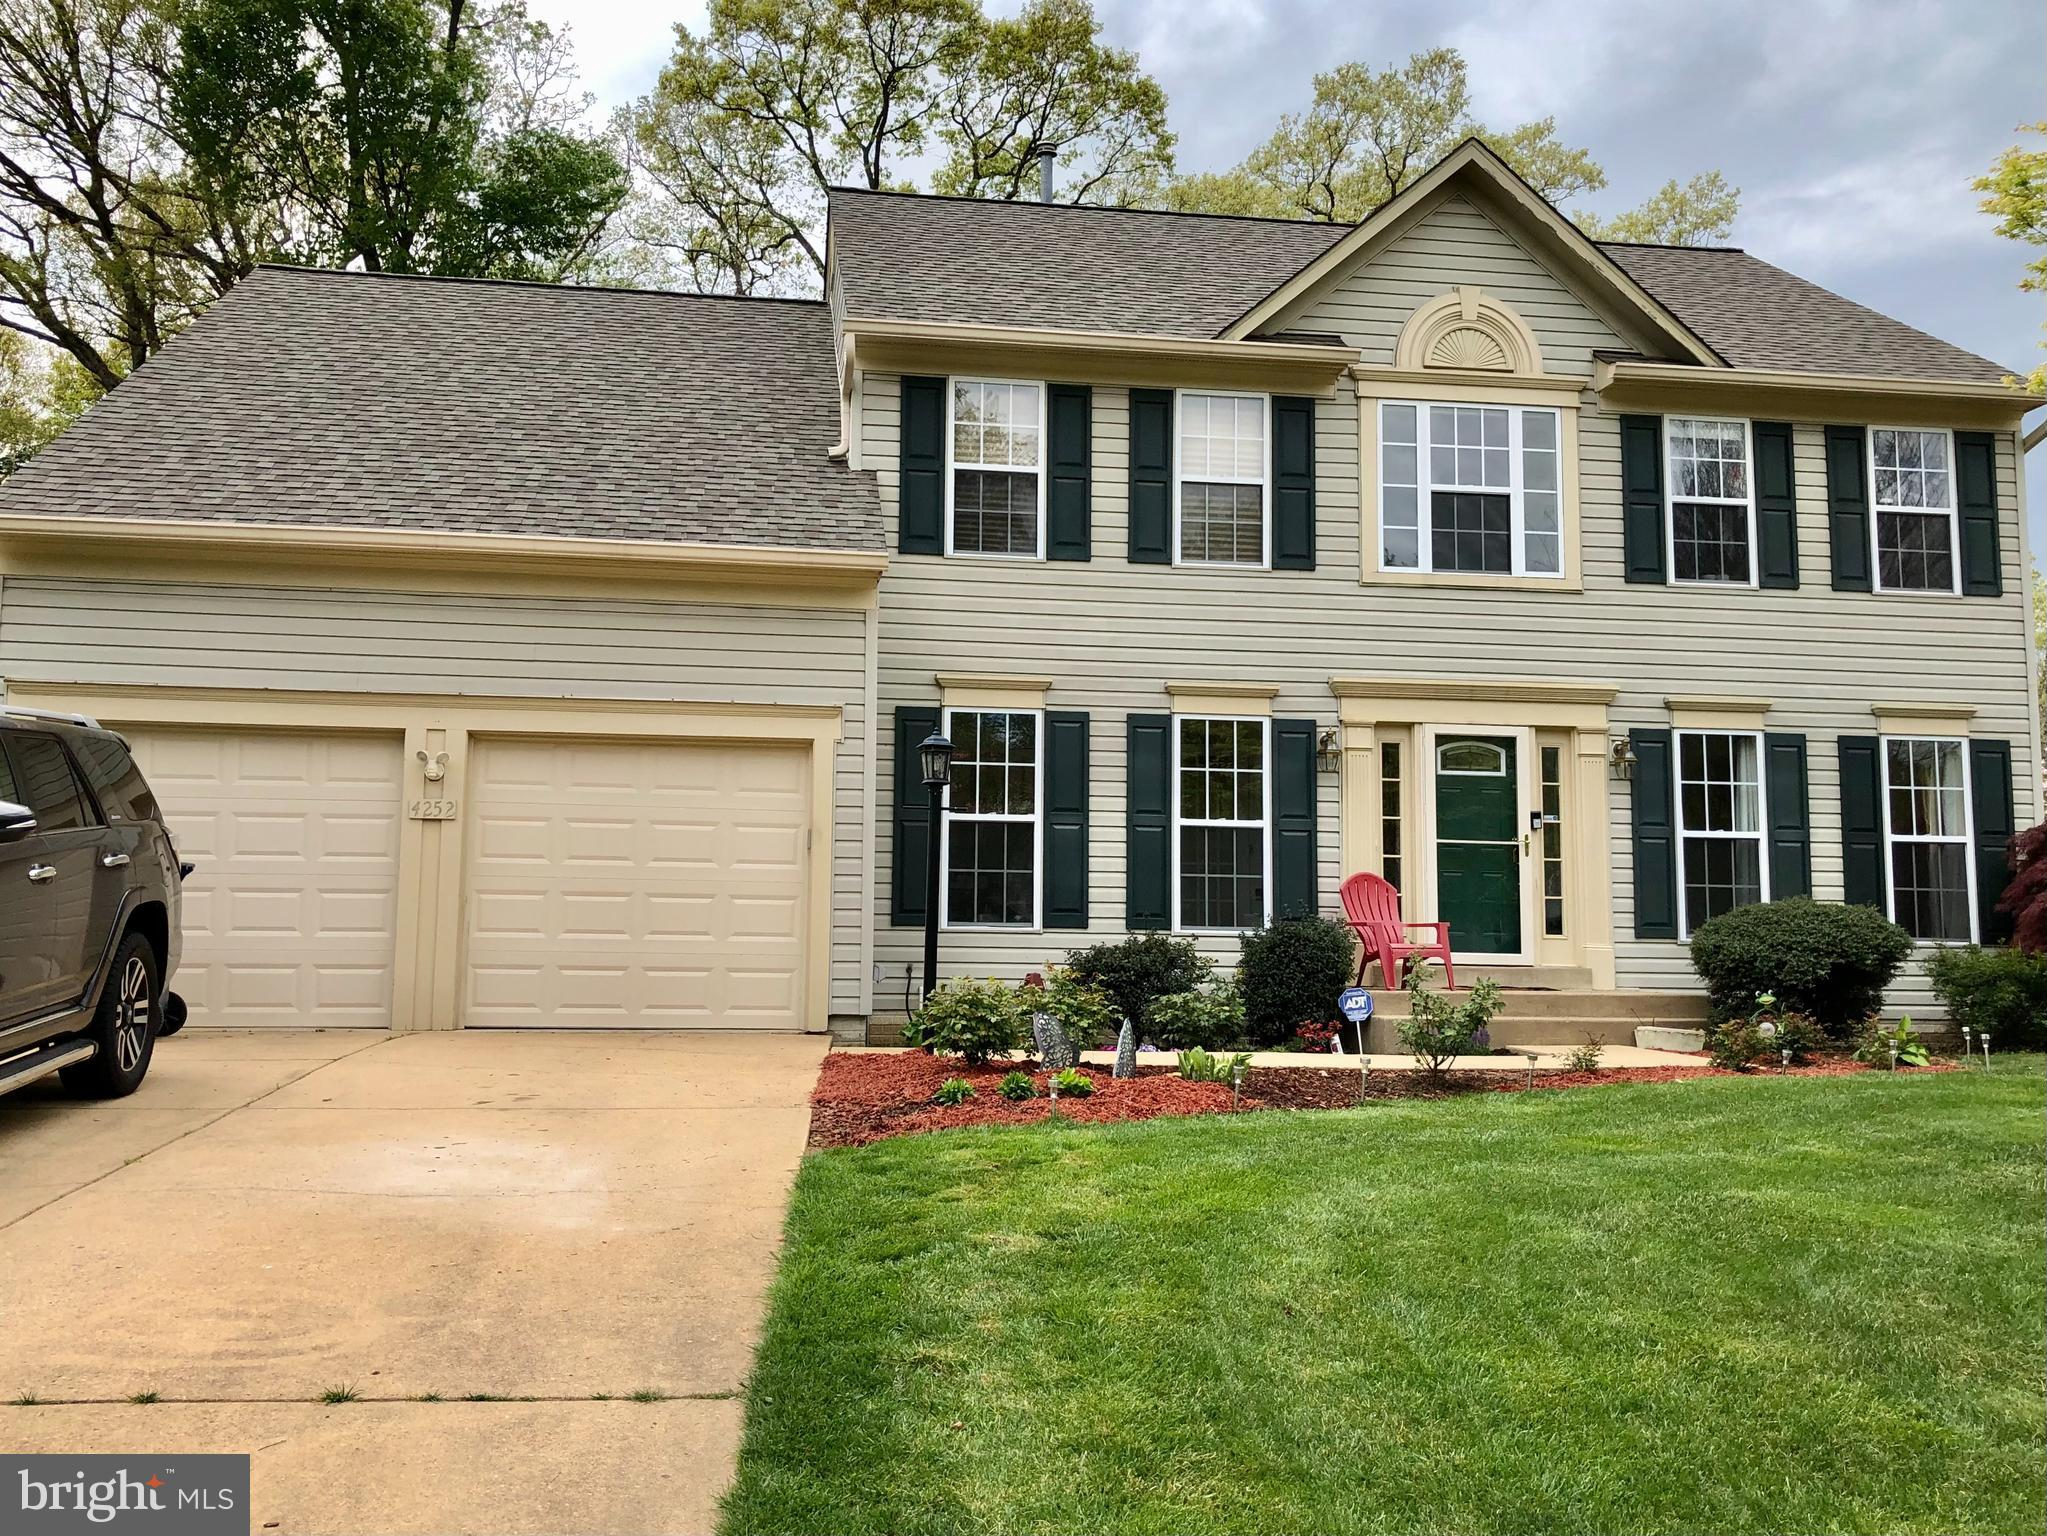 Showings on   Sunday May 2nd from 11:00 Am to 4:00 PM, please go and show **********      OPEN HOUSE ON SUNDAY MAY 2ND FROM 2:00 TO 4:00 PM.   *******  Please respect all COVID-19 protocols when showing, Beautiful and bright 3 levels, 4 bedrooms 3 1/2 bathrooms colonial with many upgrades. Roof replaced 6 months ago.  HVAC  system three years old.  Lawn sprinkler system and much more.  Large Master bedroom with a luxury master bath.  Extra large family room with a wood fireplace.   Beautiful hardwood floor on main level. Remote control blind on window over front door.  The kitchen overlooks the family room and leads to a private deck and a beautiful stone patio in the back yard.   Oversize concrete driveway.******     Showing times available on Saturday May 1st from 11:00 to 6:00 PM and Sunday May 2nd from 11:00 to 4:00 PM.******